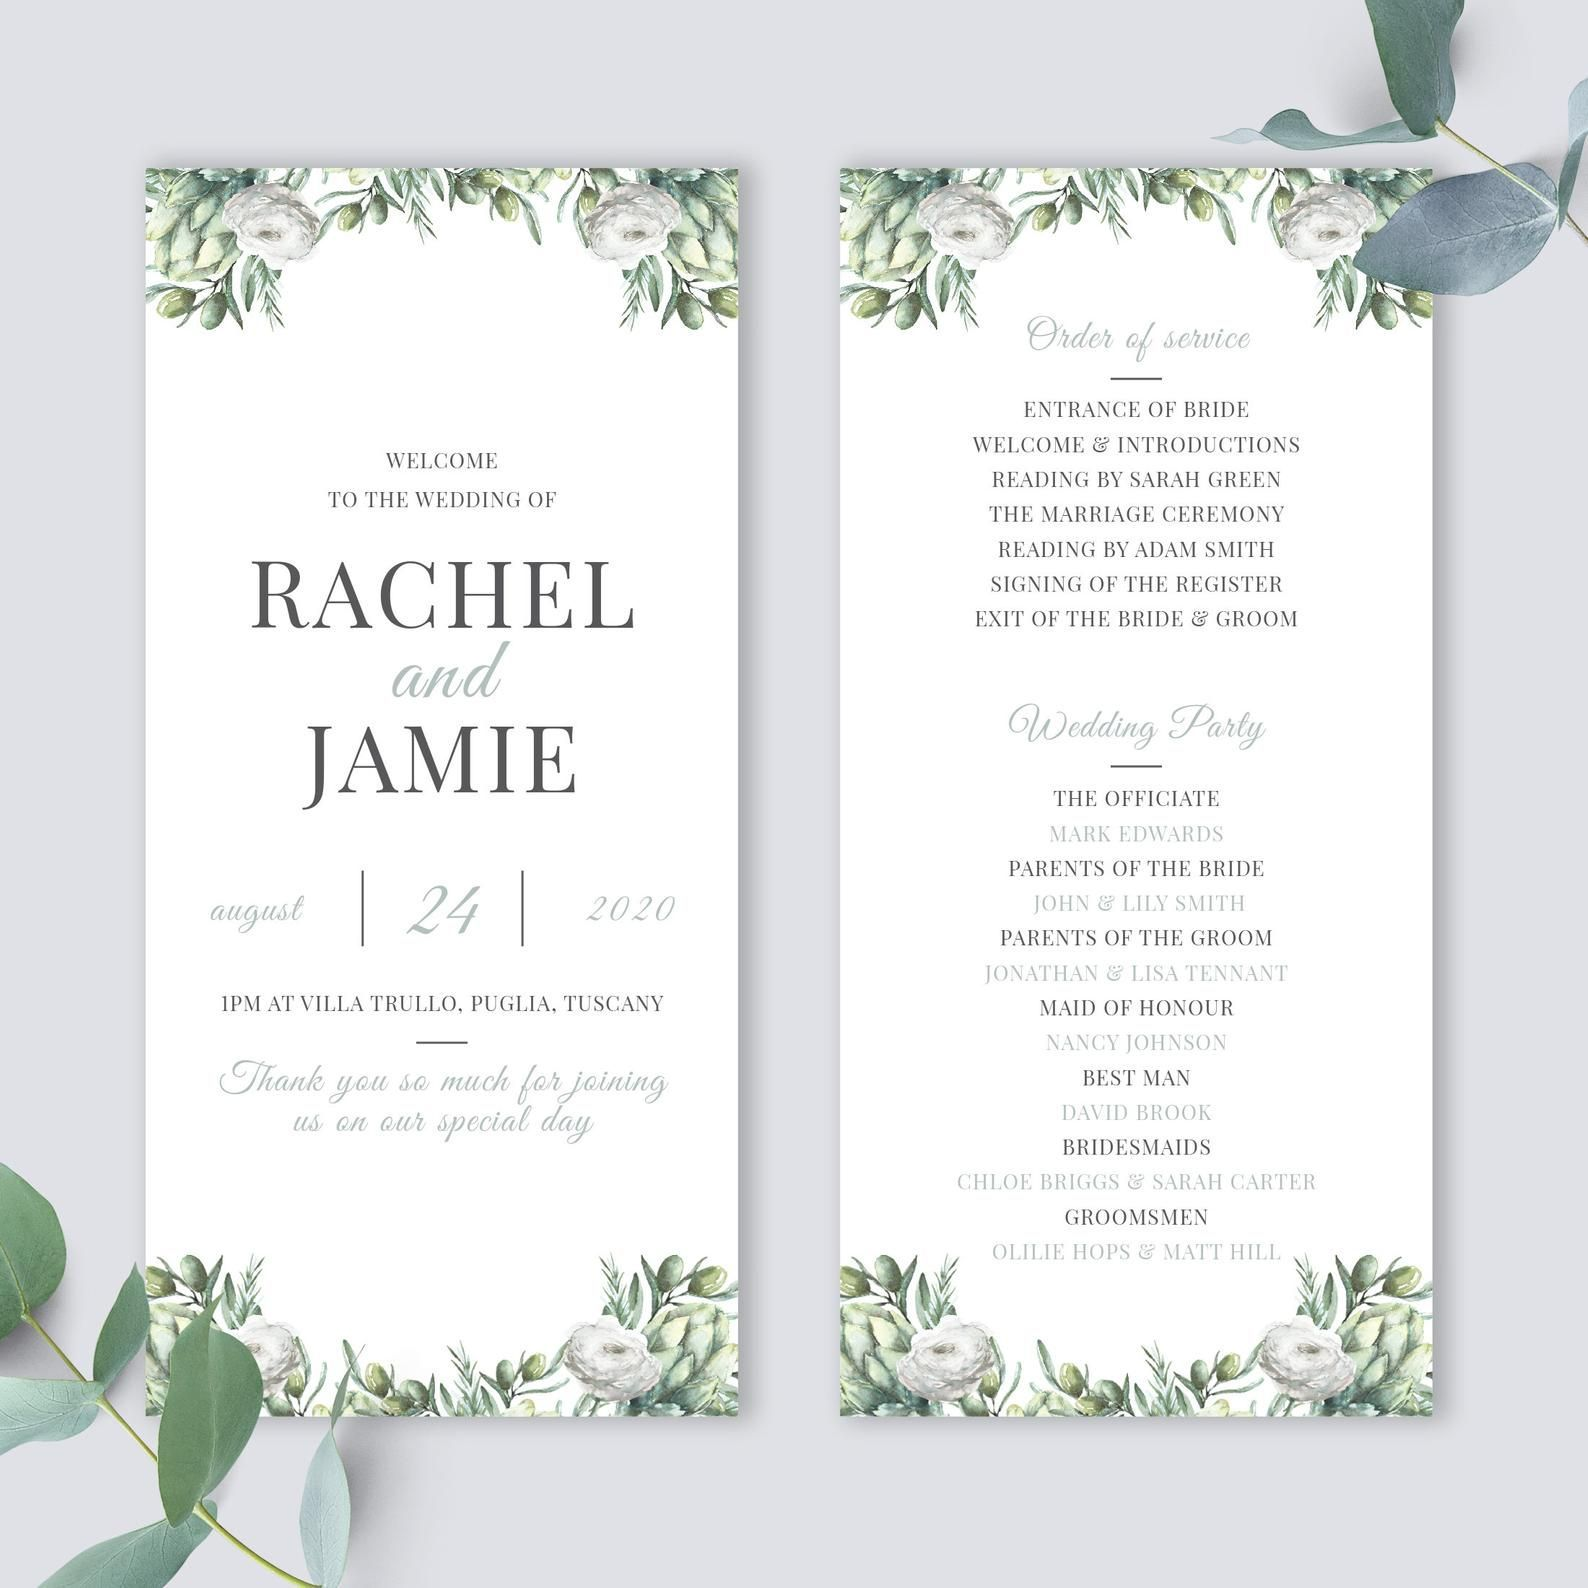 000 Unforgettable Wedding Order Of Service Template Photo  Pdf Publisher Microsoft WordFull